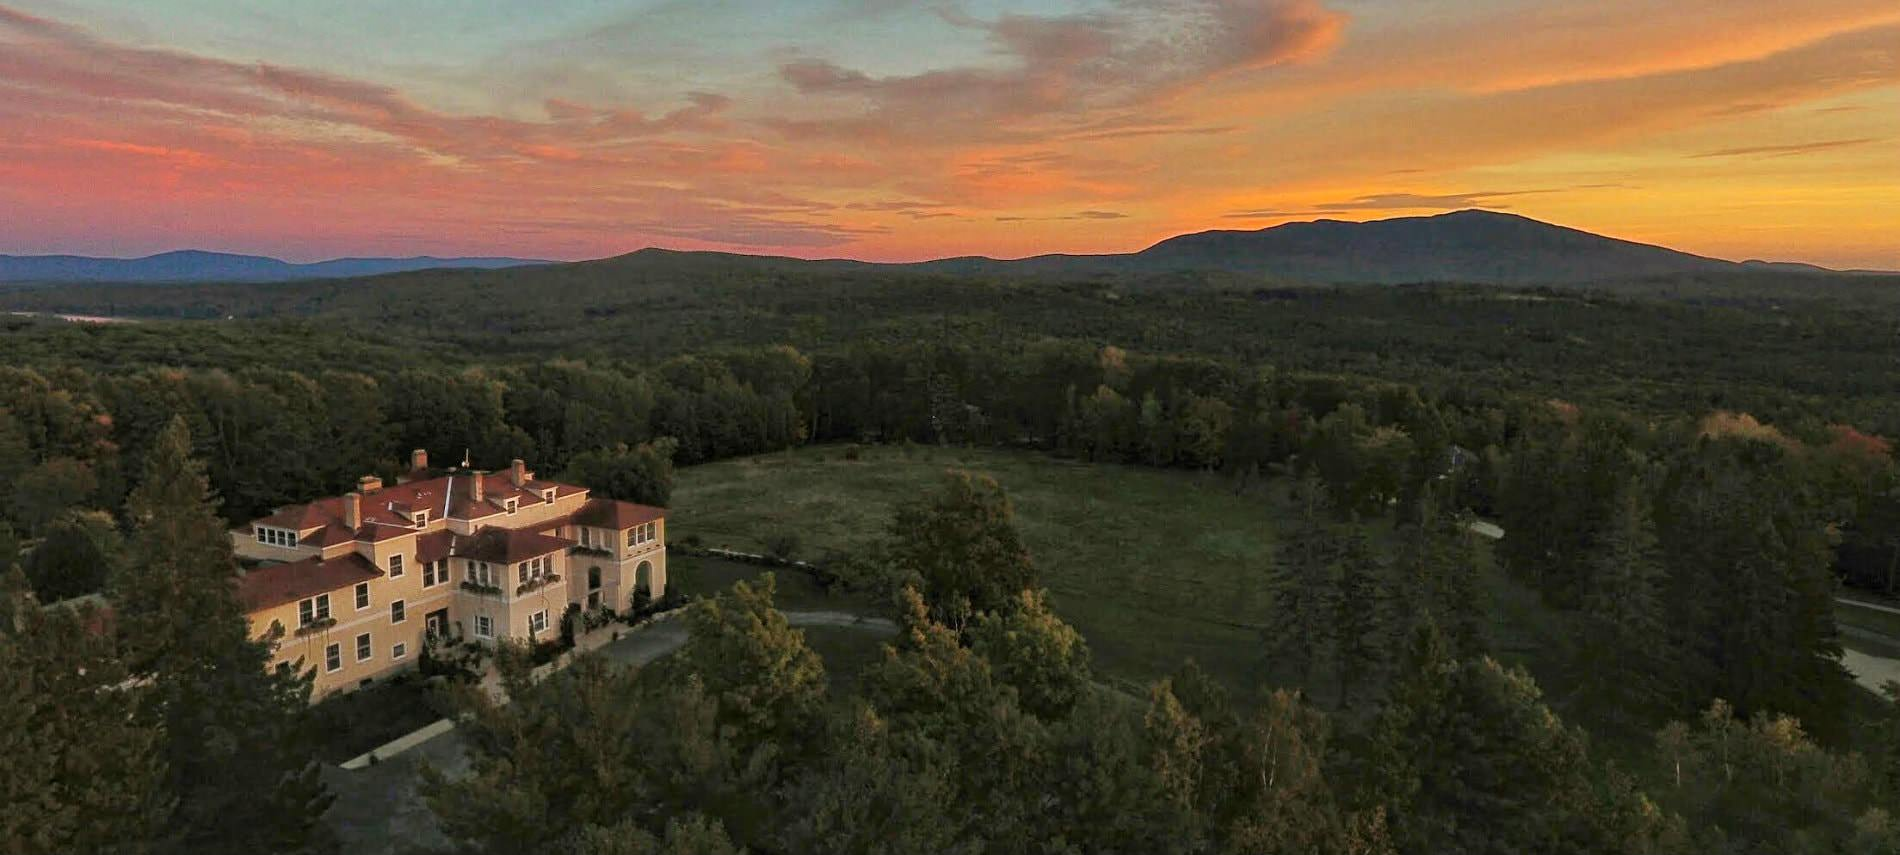 Large building, Aldworth Manor, with a beautiful view of Mt. Monadnock and the sunset